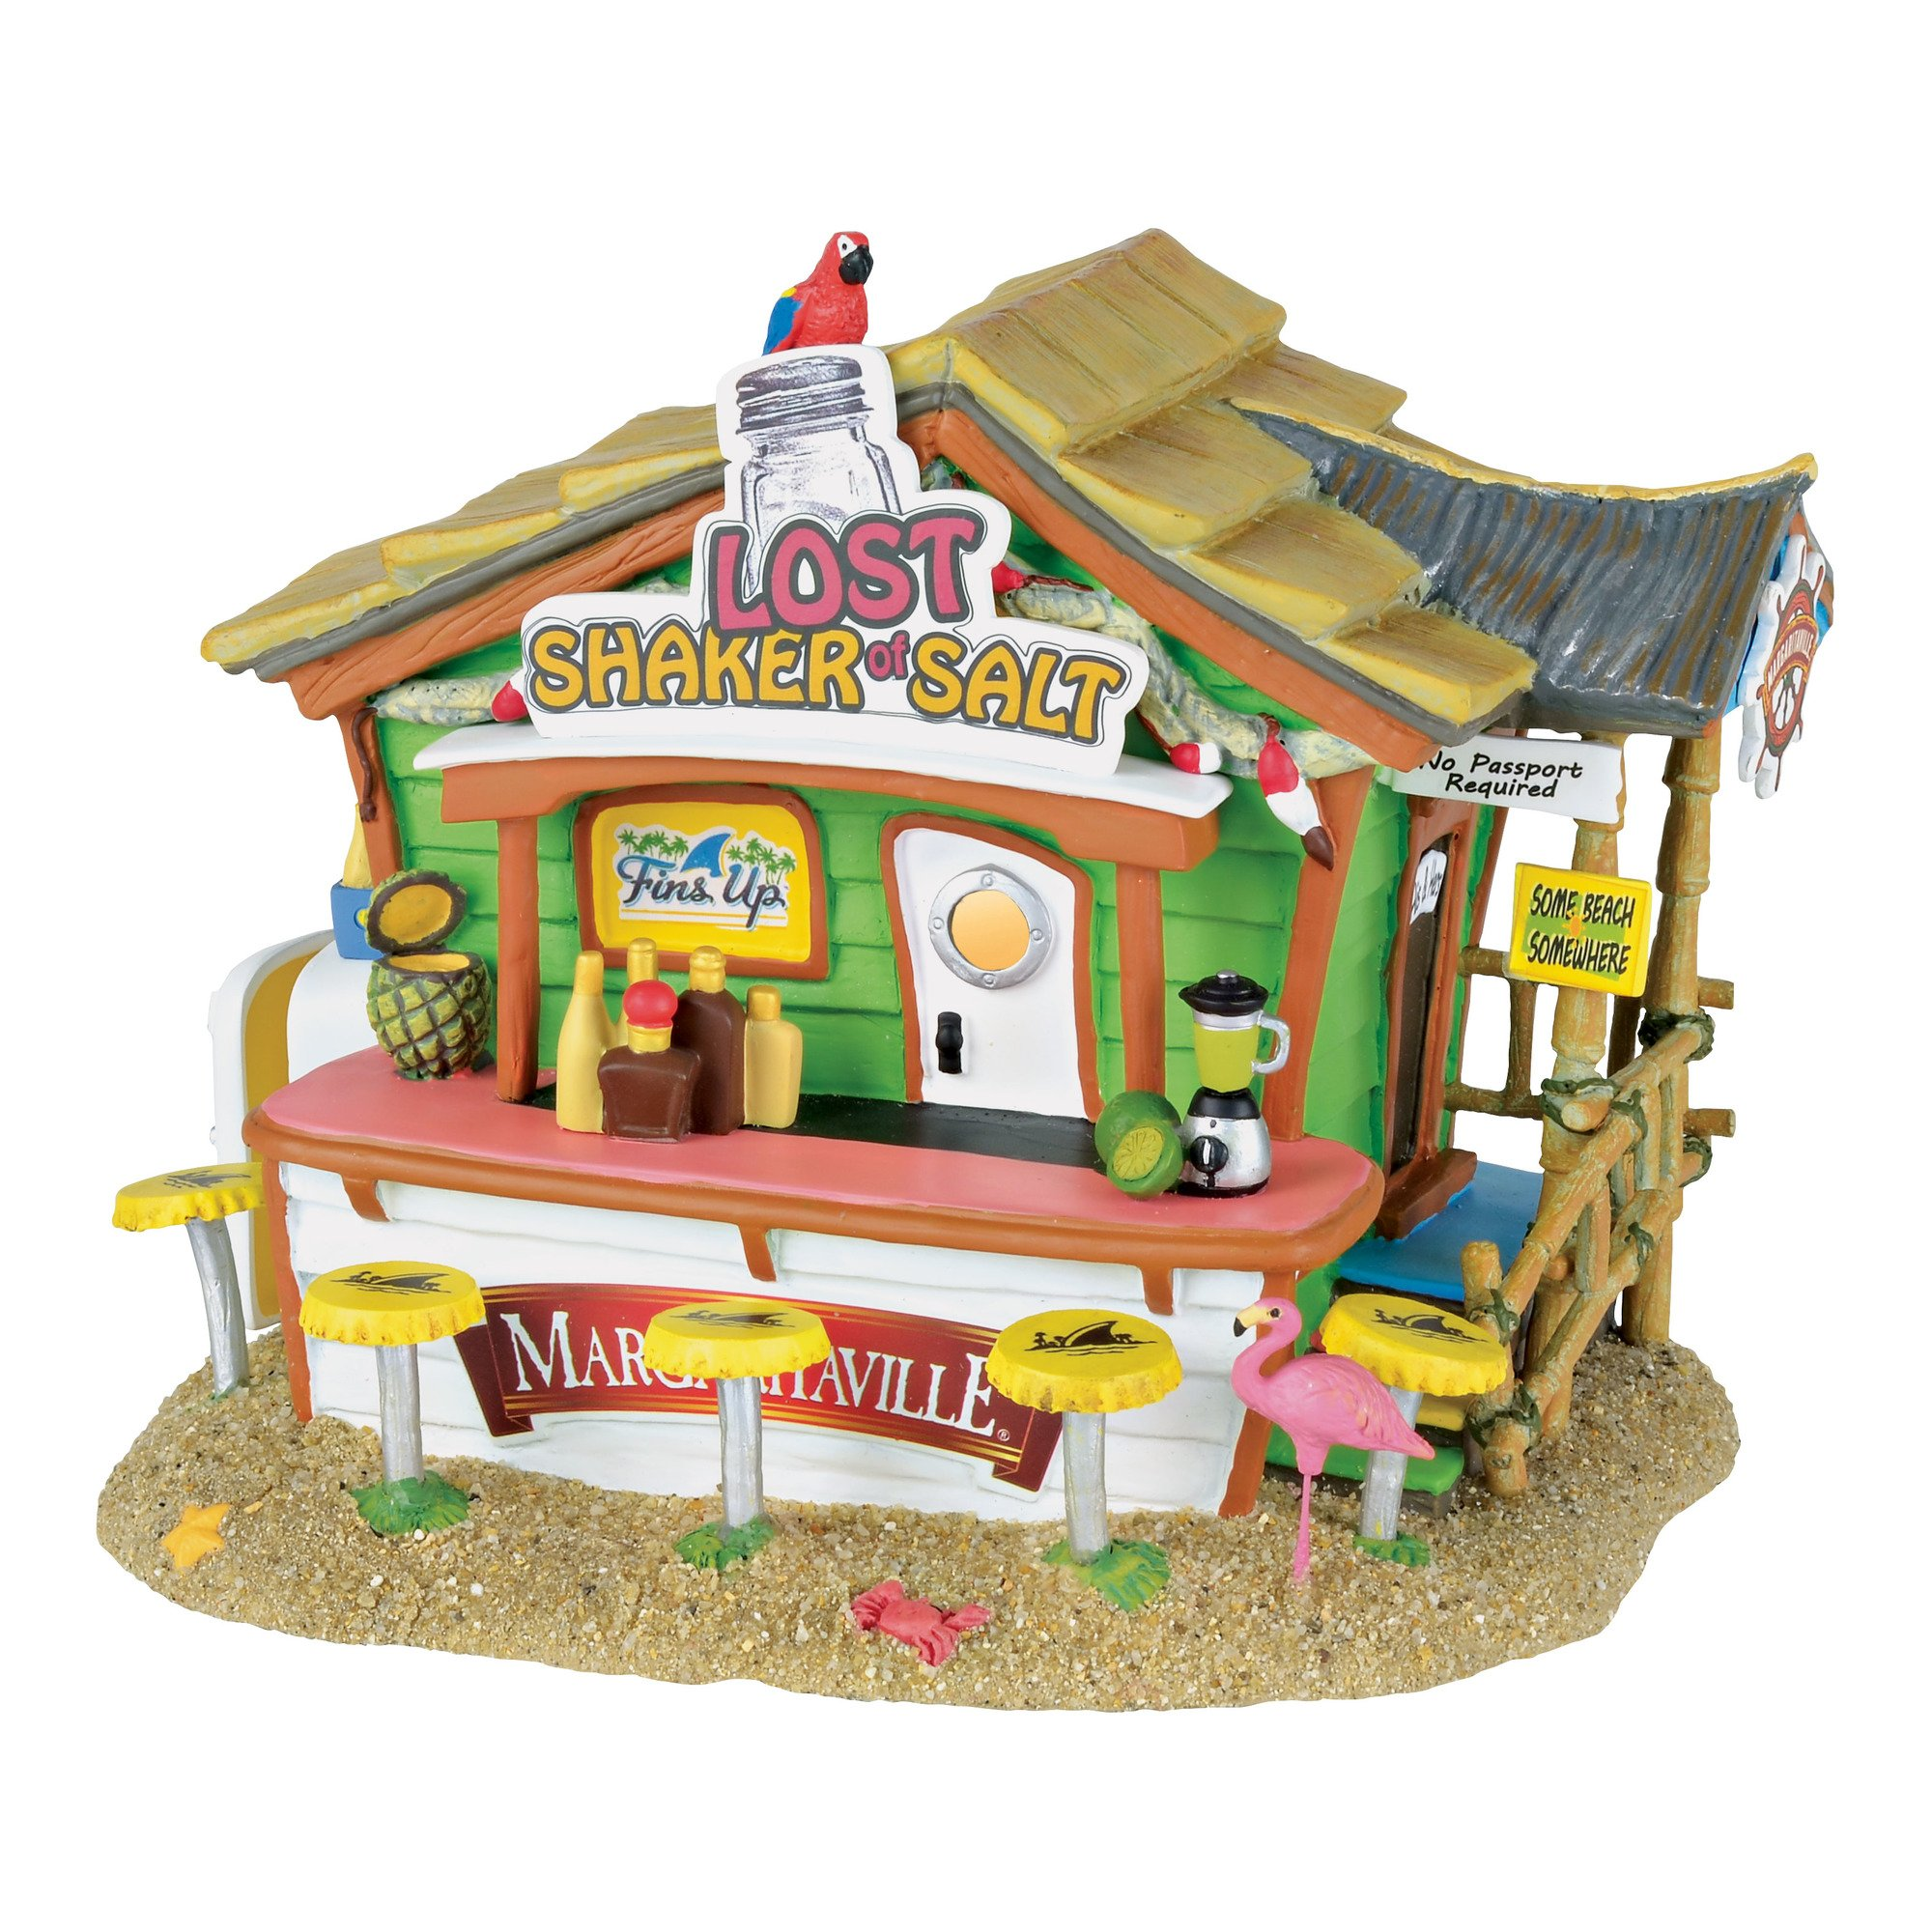 Department 56 Margaritaville Lost Shaker of Salt Bar Musical Village Lit Building, Multicolored